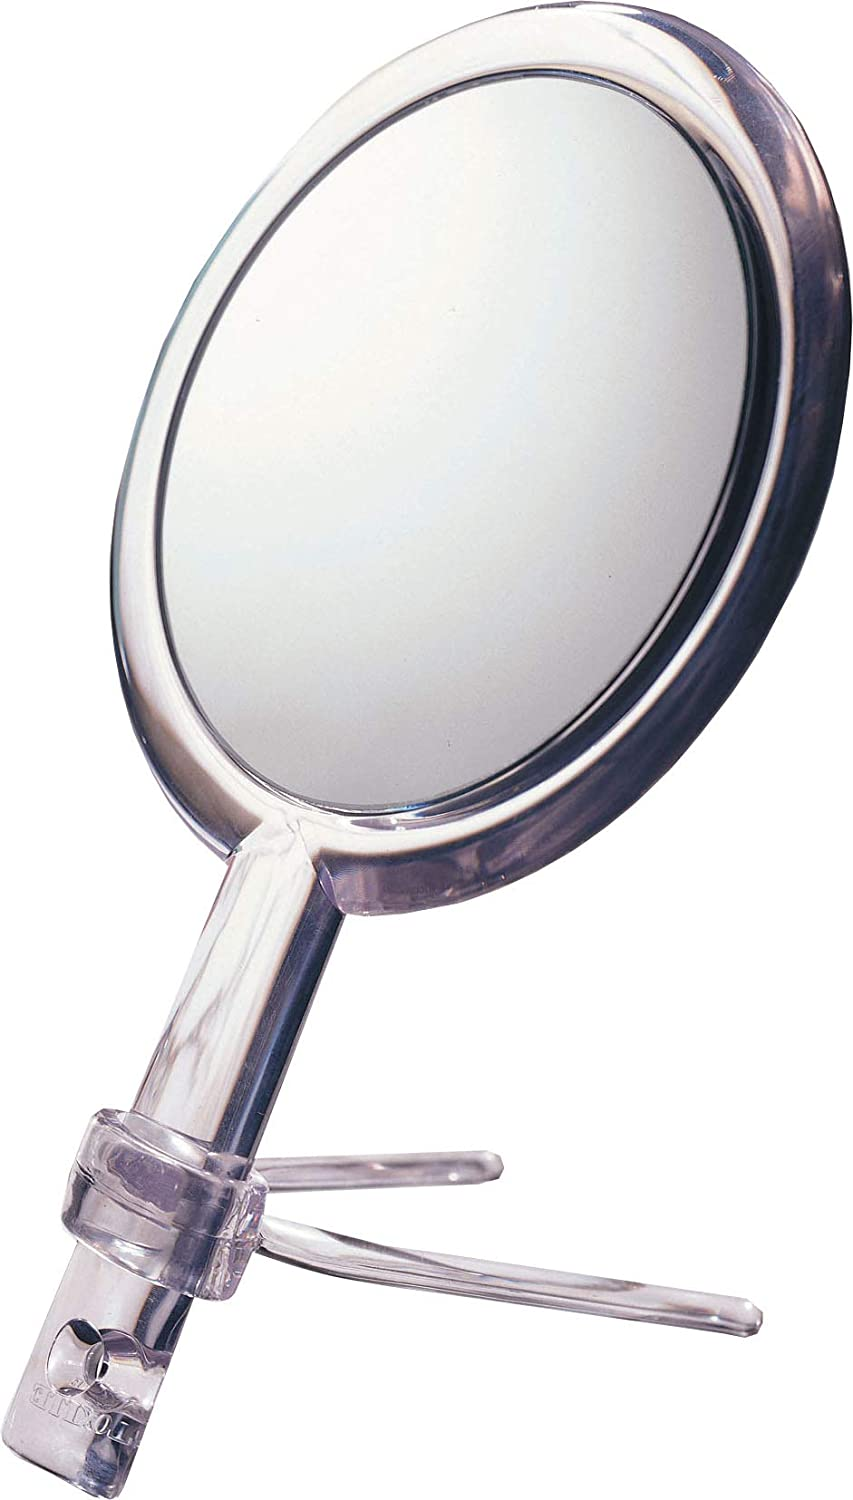 Floxite L/d 15x Plus 1x Handheld 2-sided Mirror With Stand